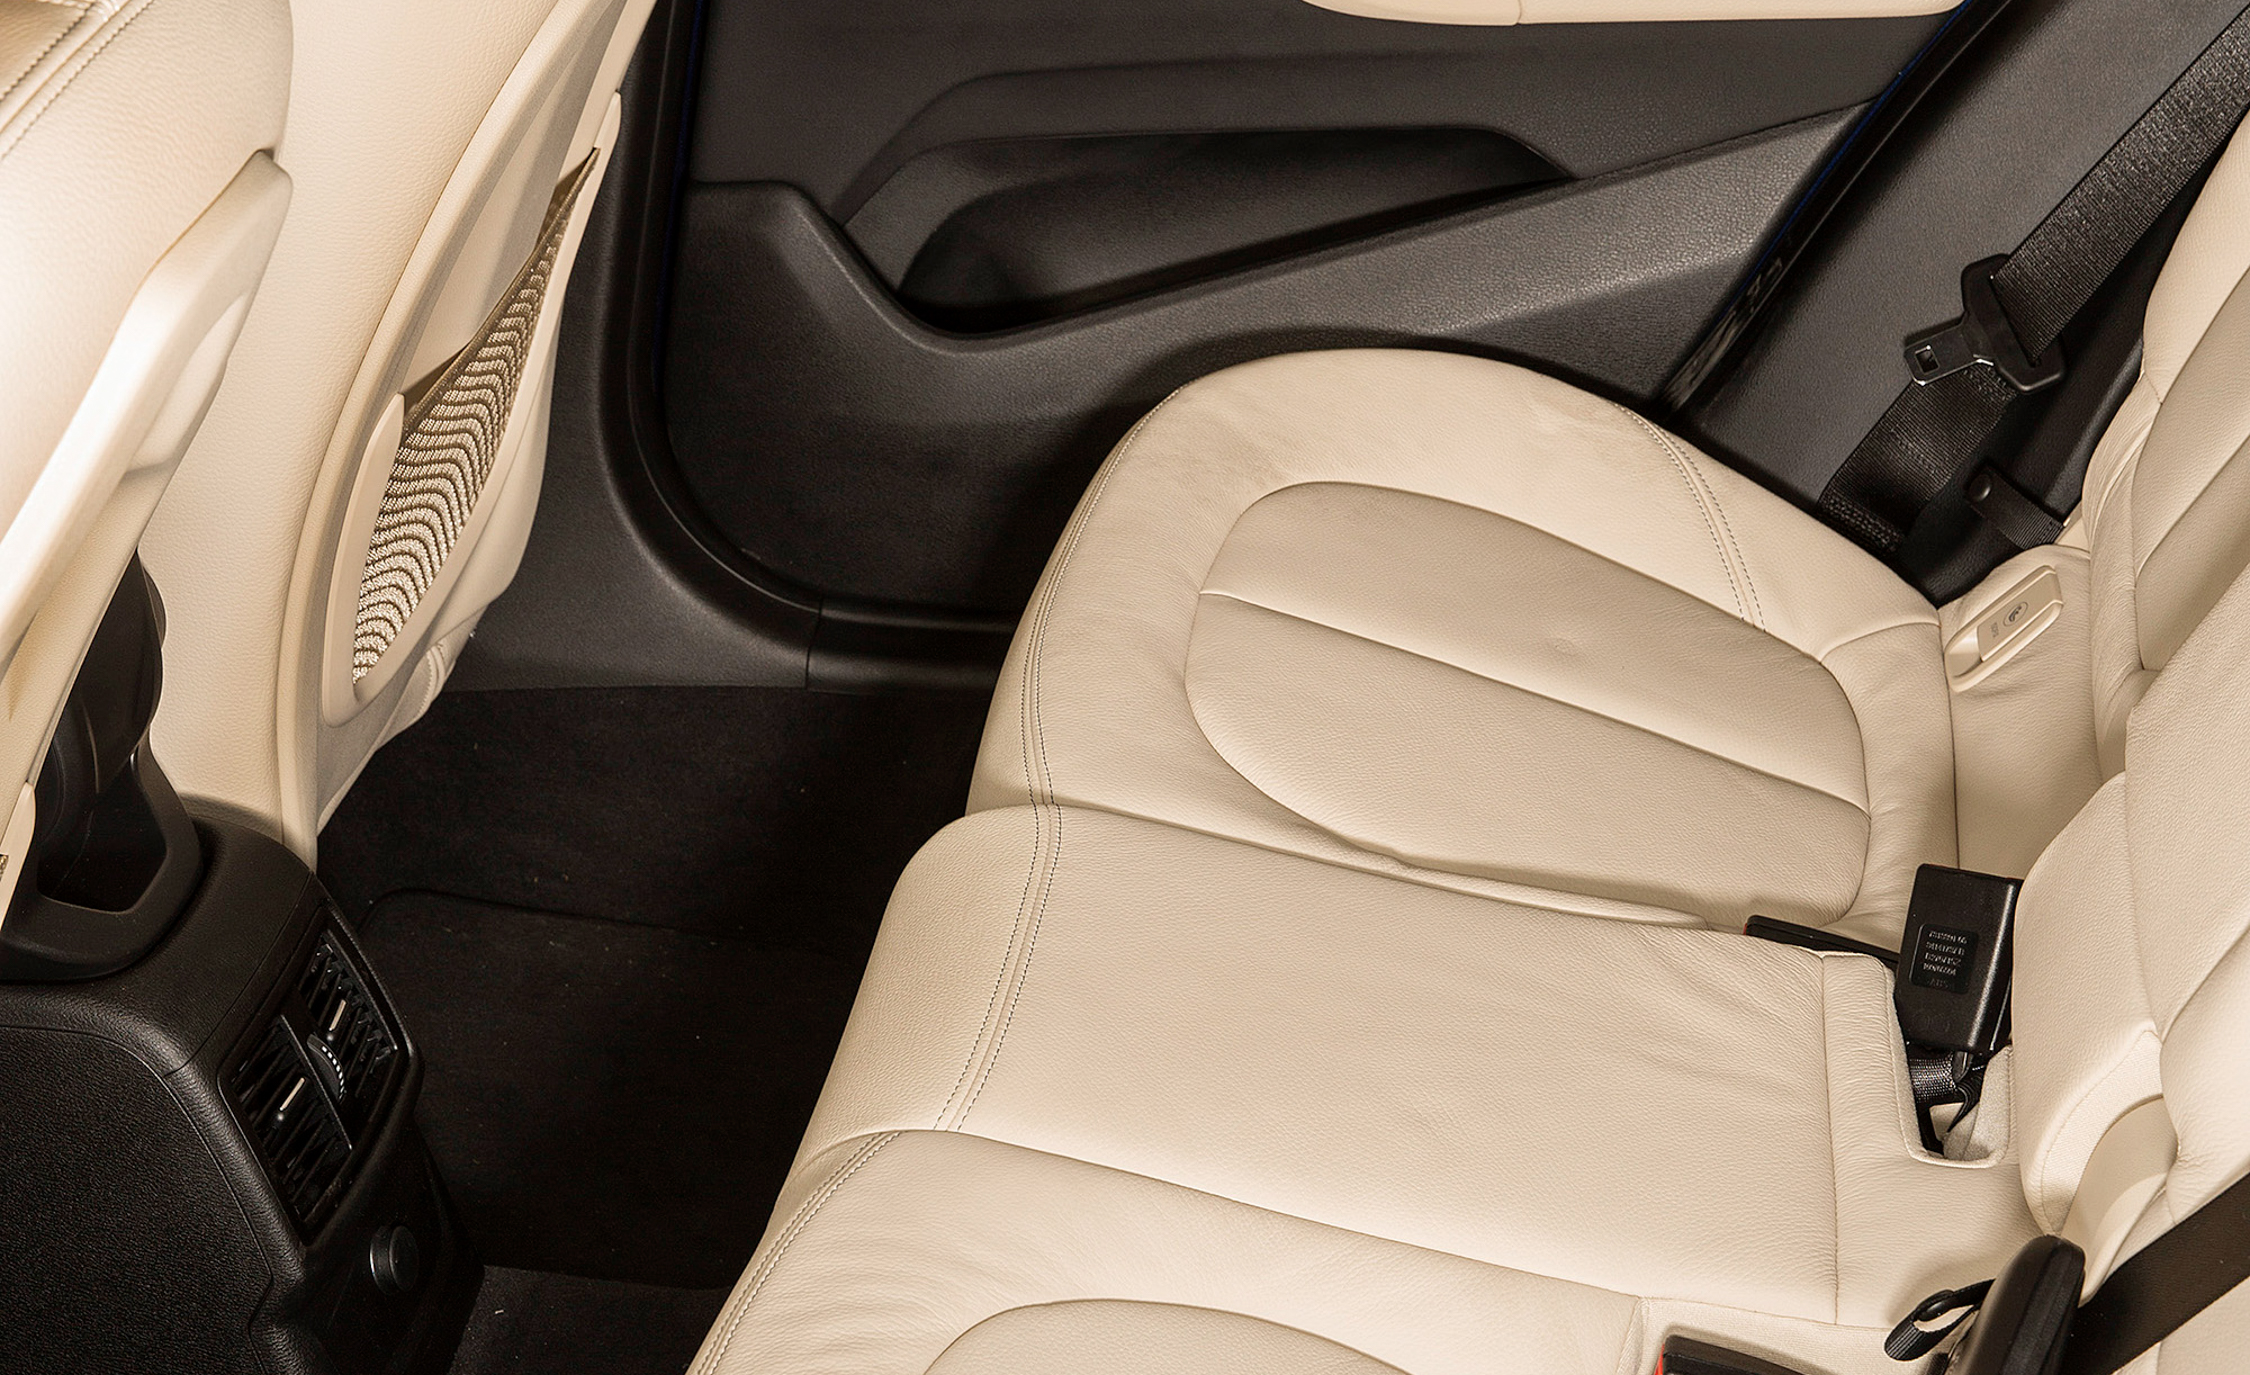 2016 BMW X1 Interior Seats Rear Details (Photo 19 of 36)